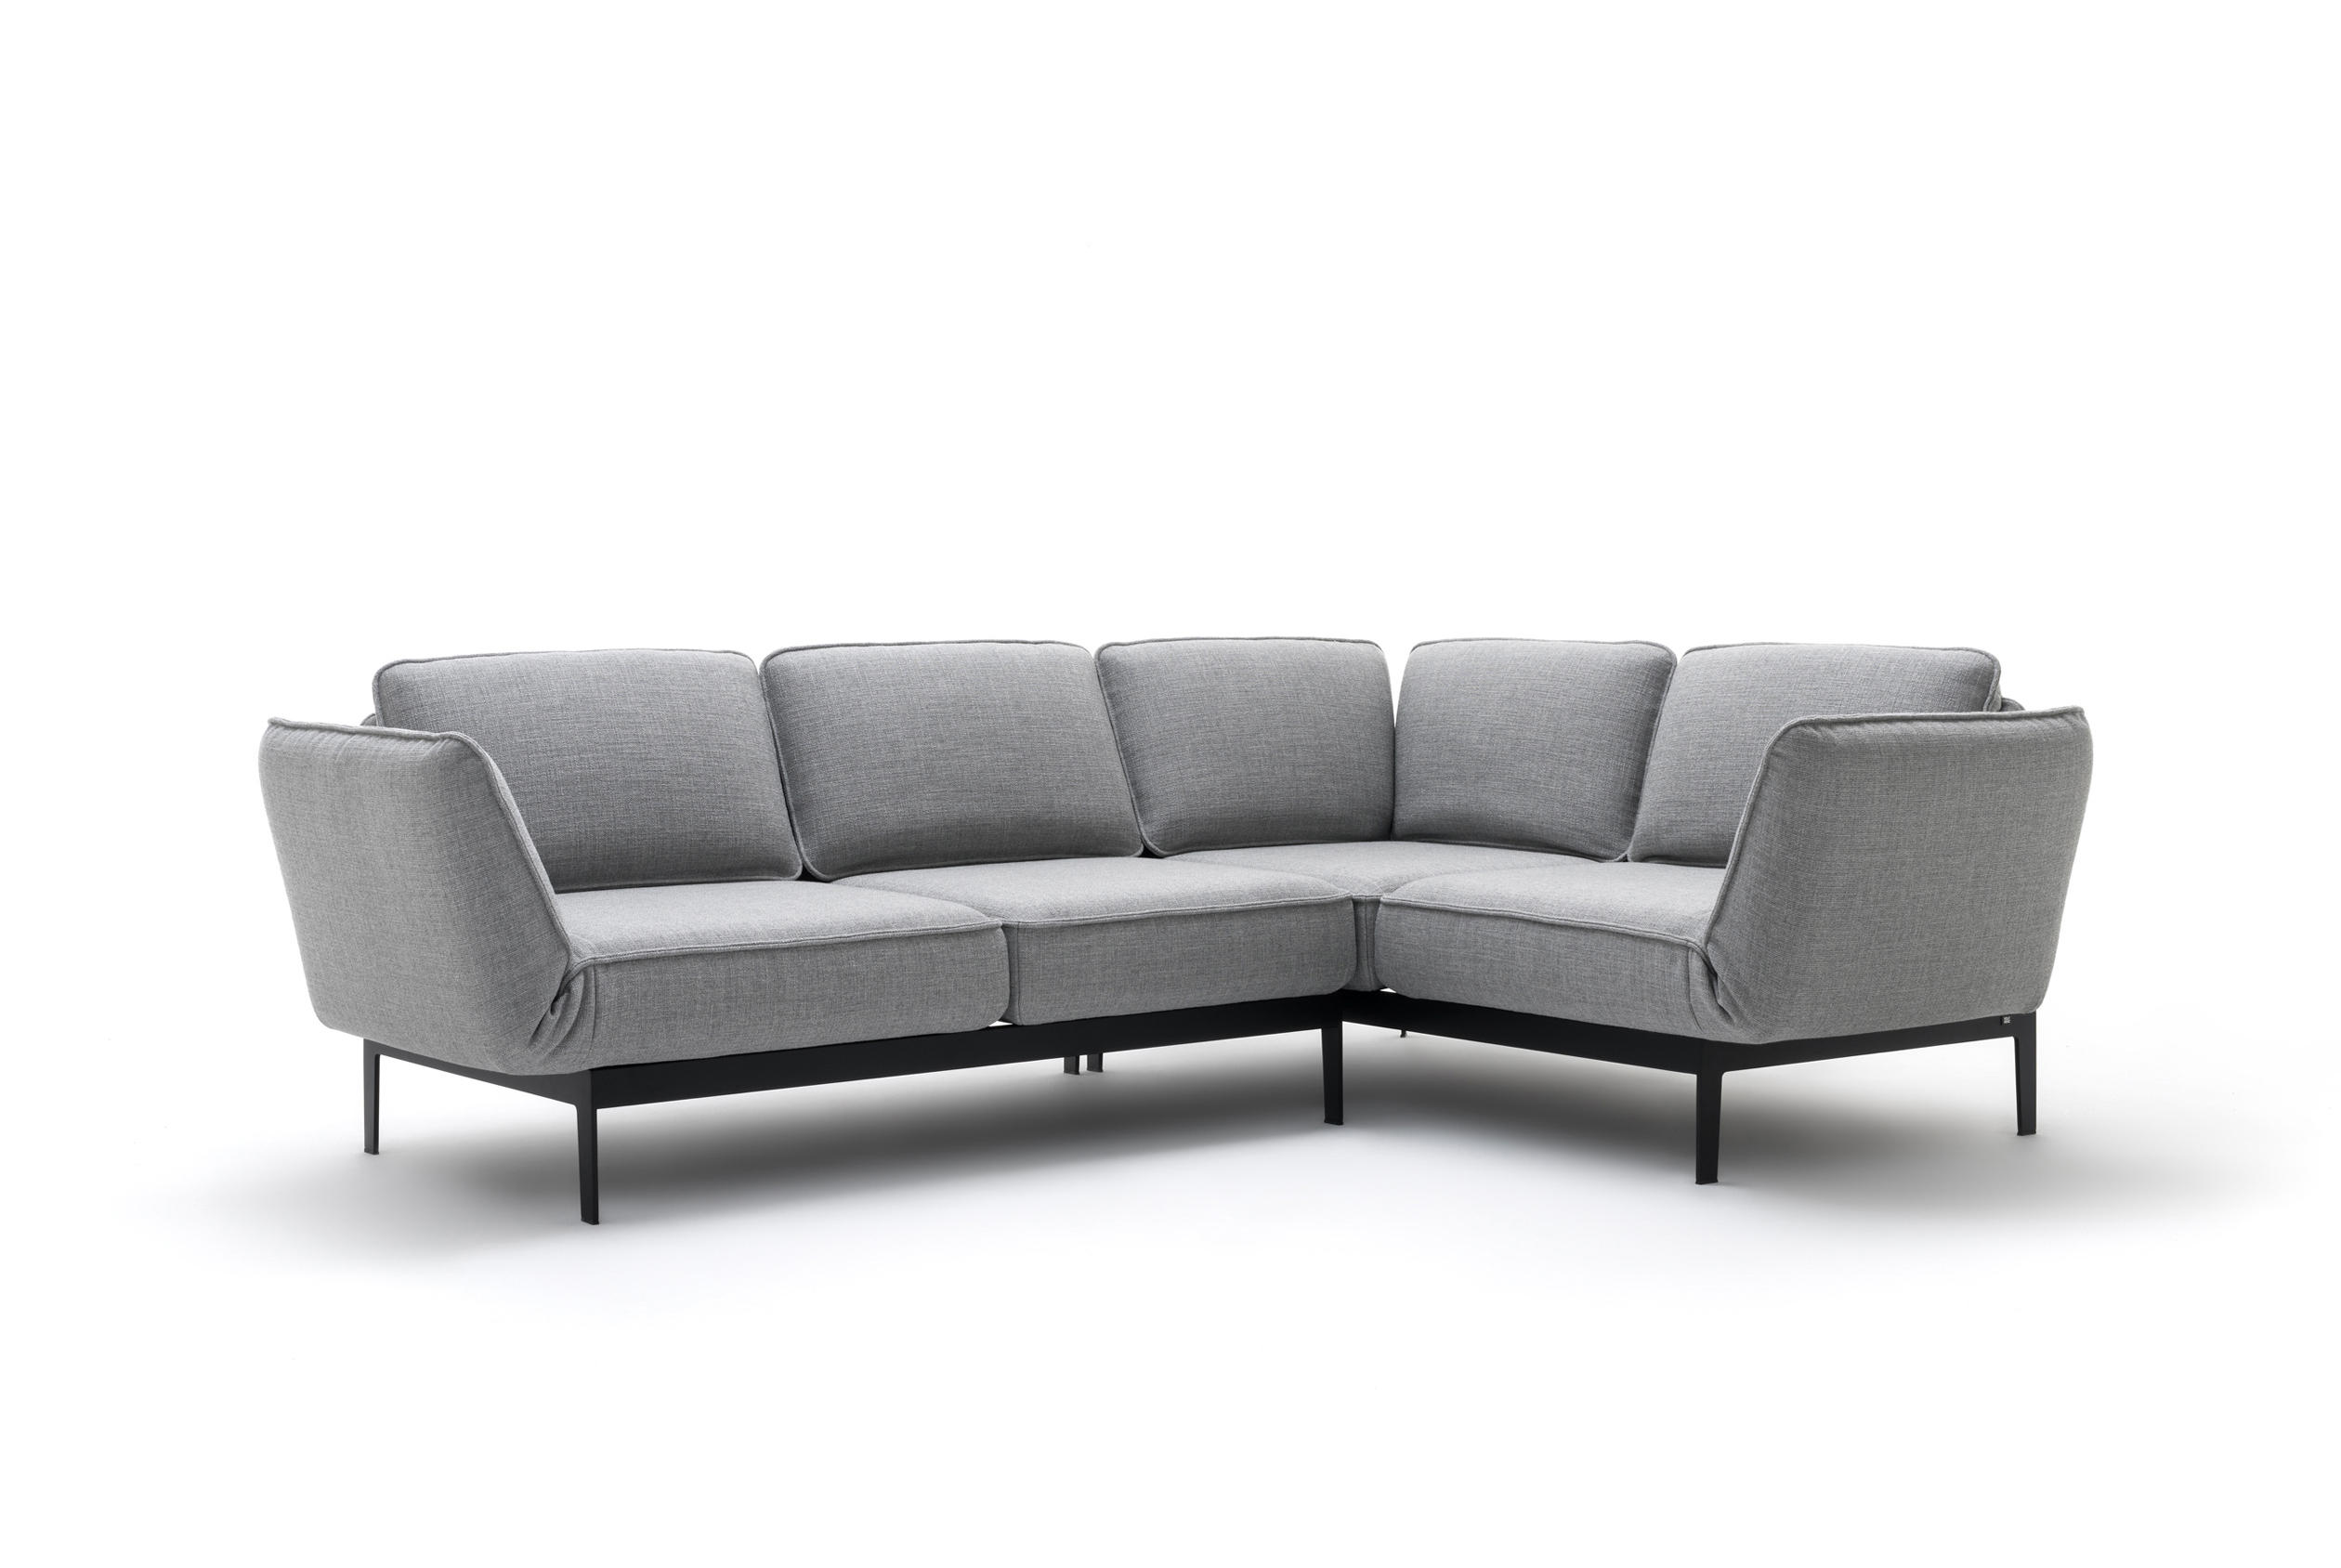 Rolf Benz 386 Mera Reclining Sofas From Rolf Benz Architonic